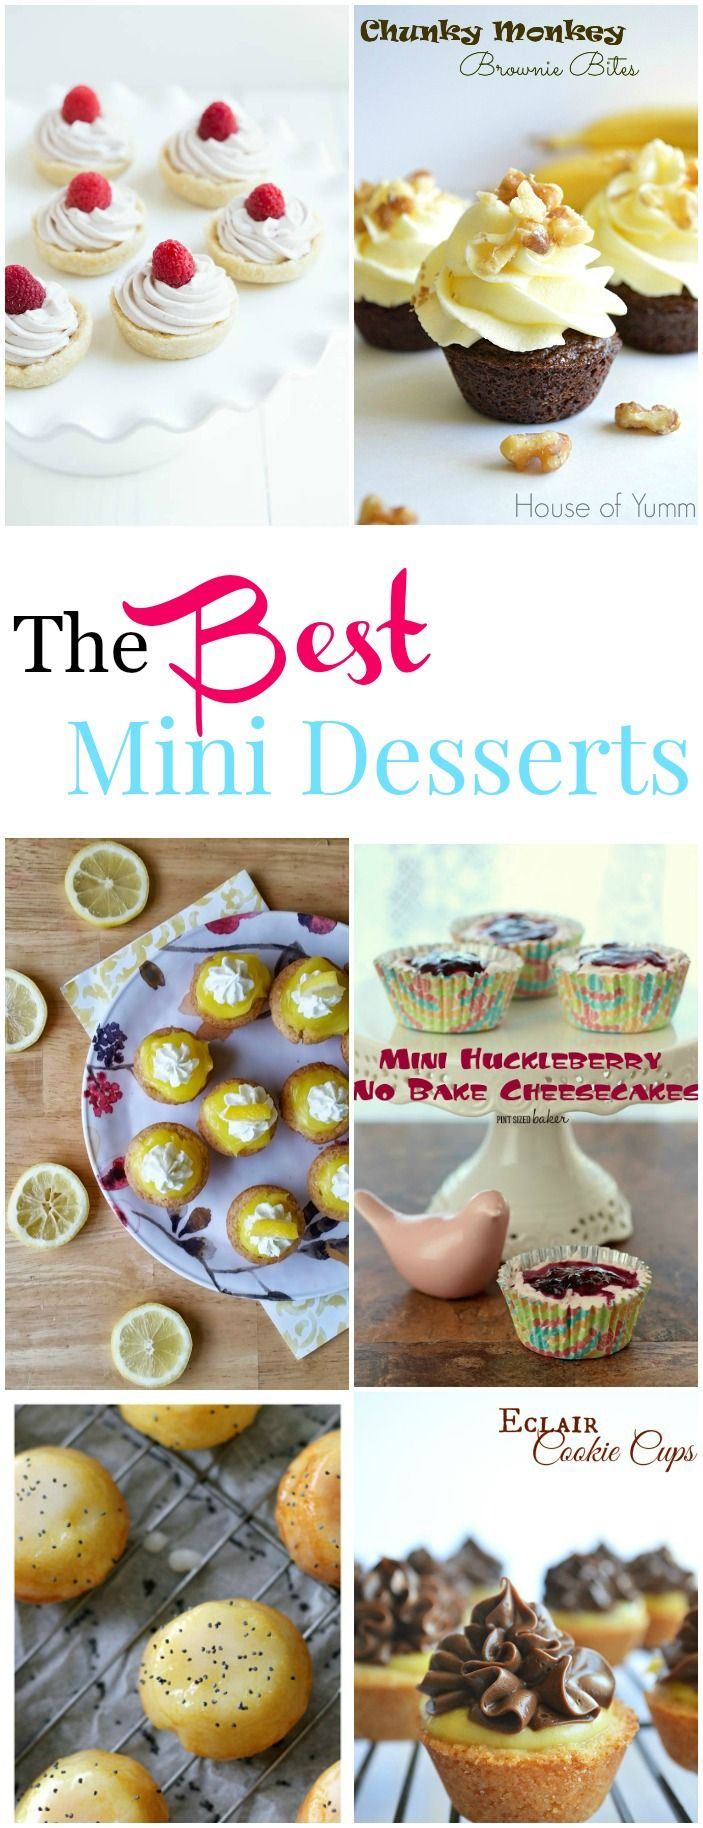 The BEST Mini Desserts collected by The Melrose Family